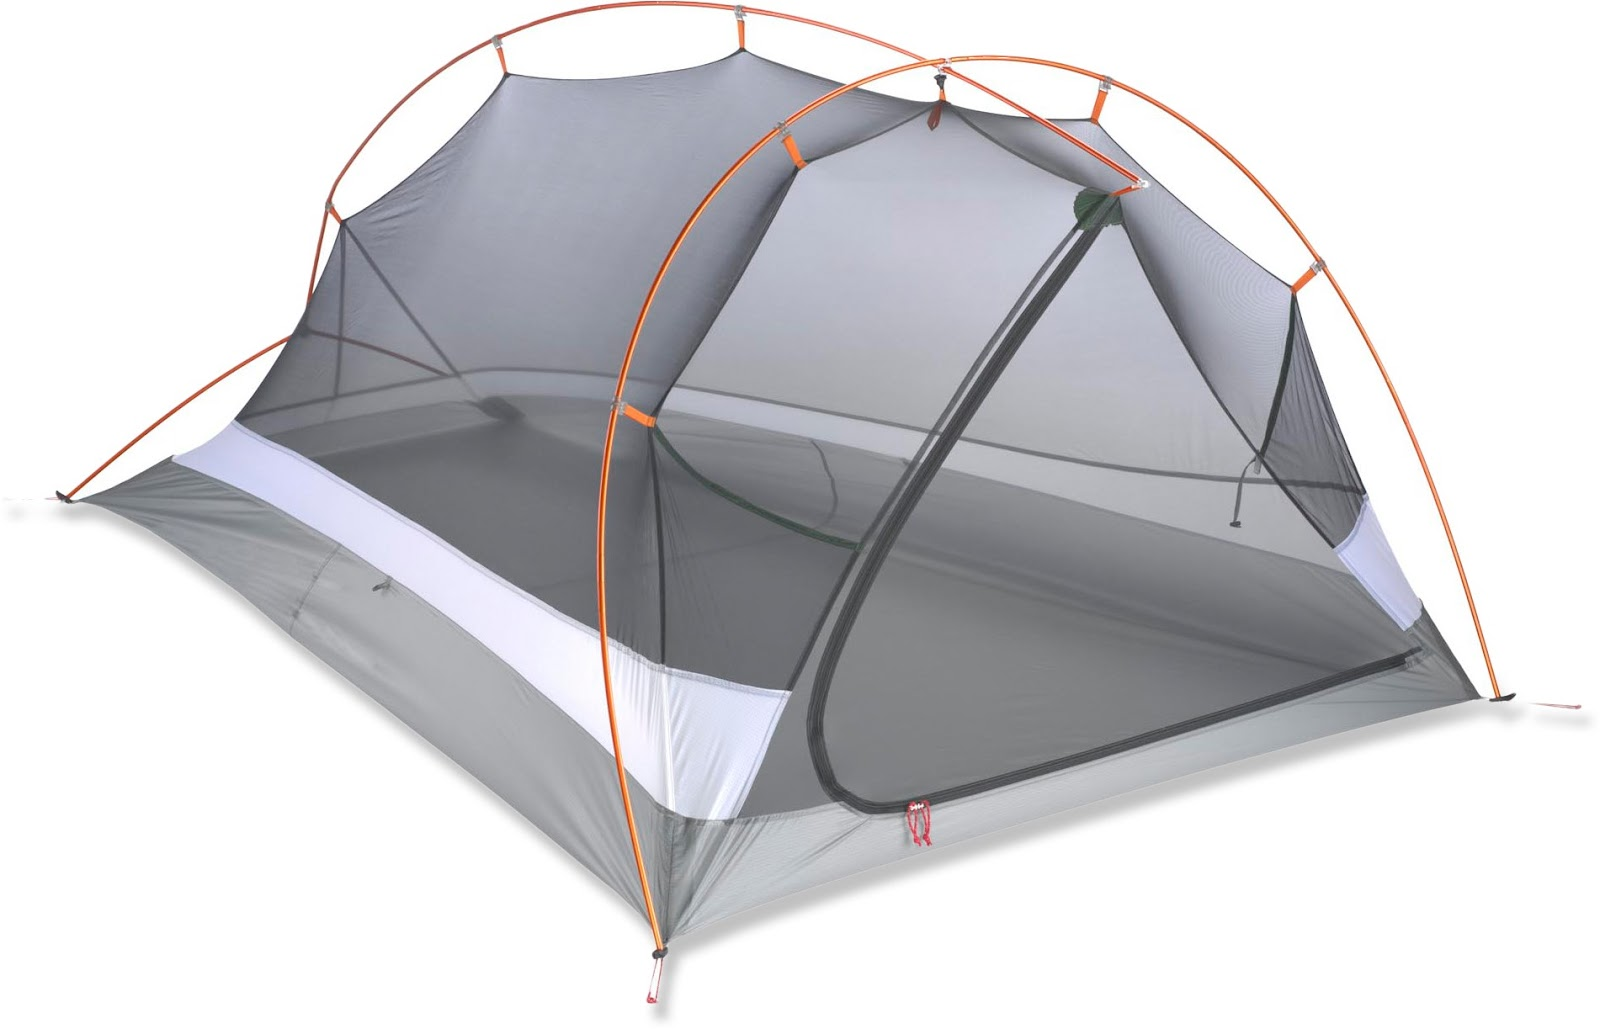 Tent Week: Best Backpacking Tent | Blessed Outdoors